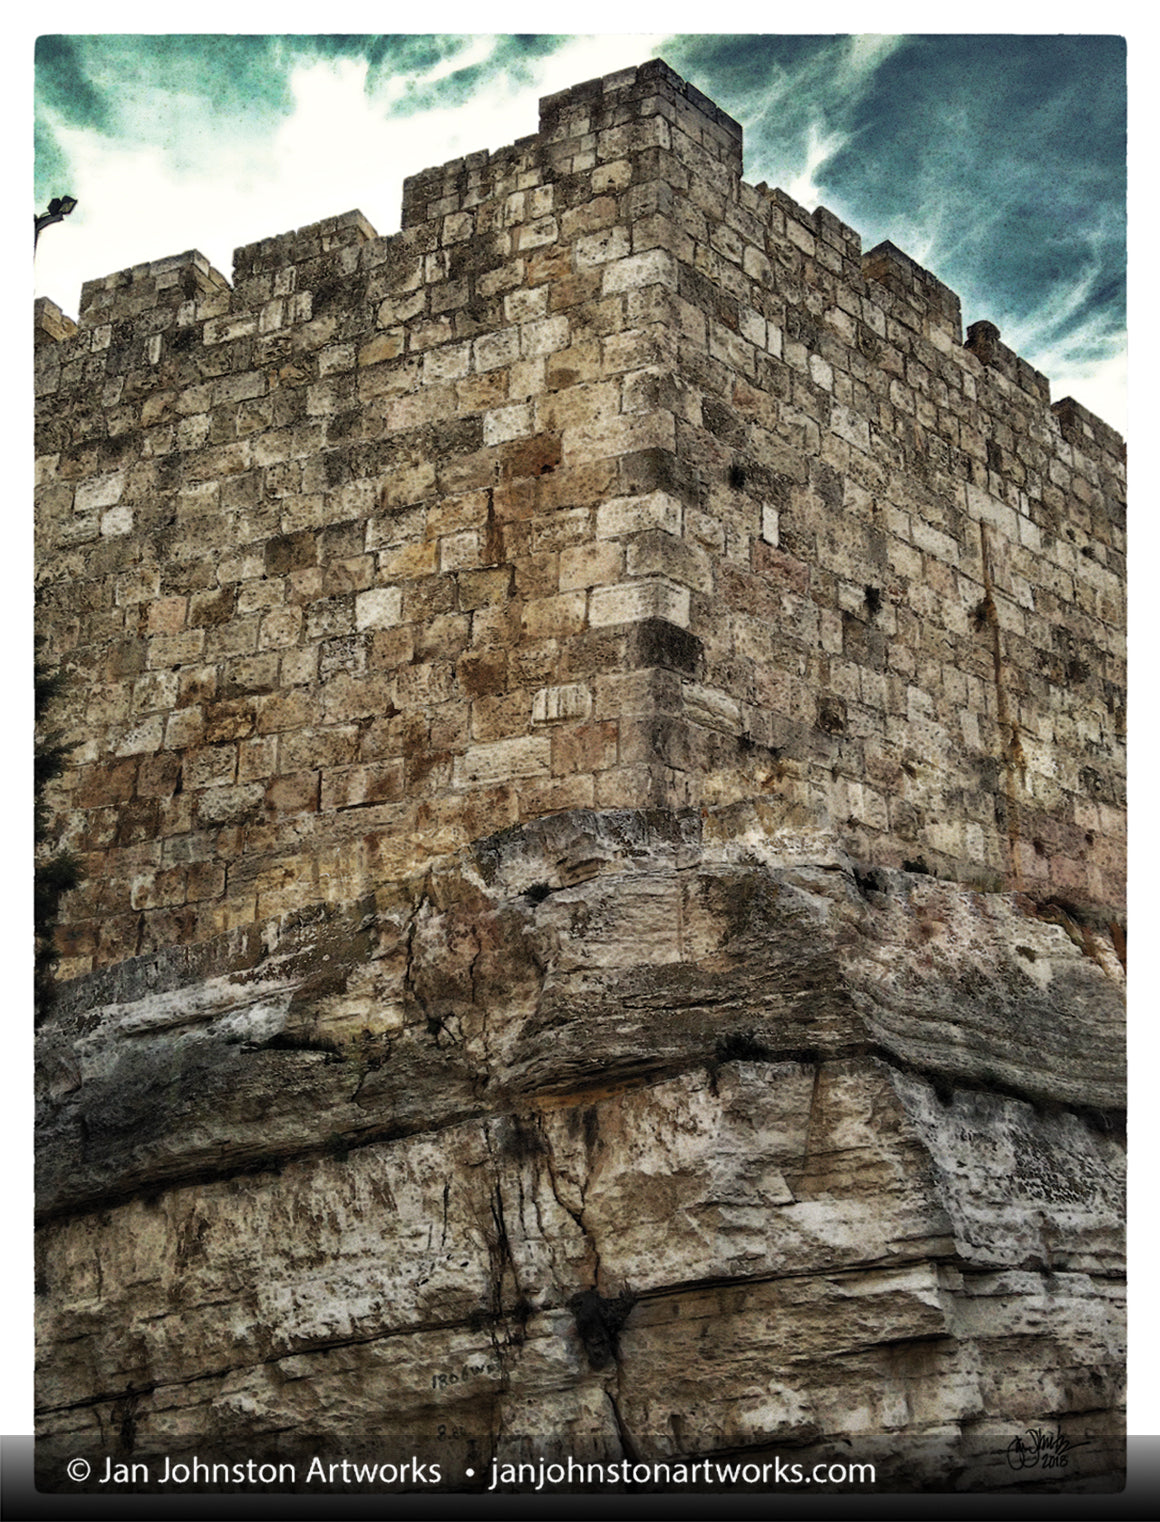 Bedrock of the Wall of Jerusalem